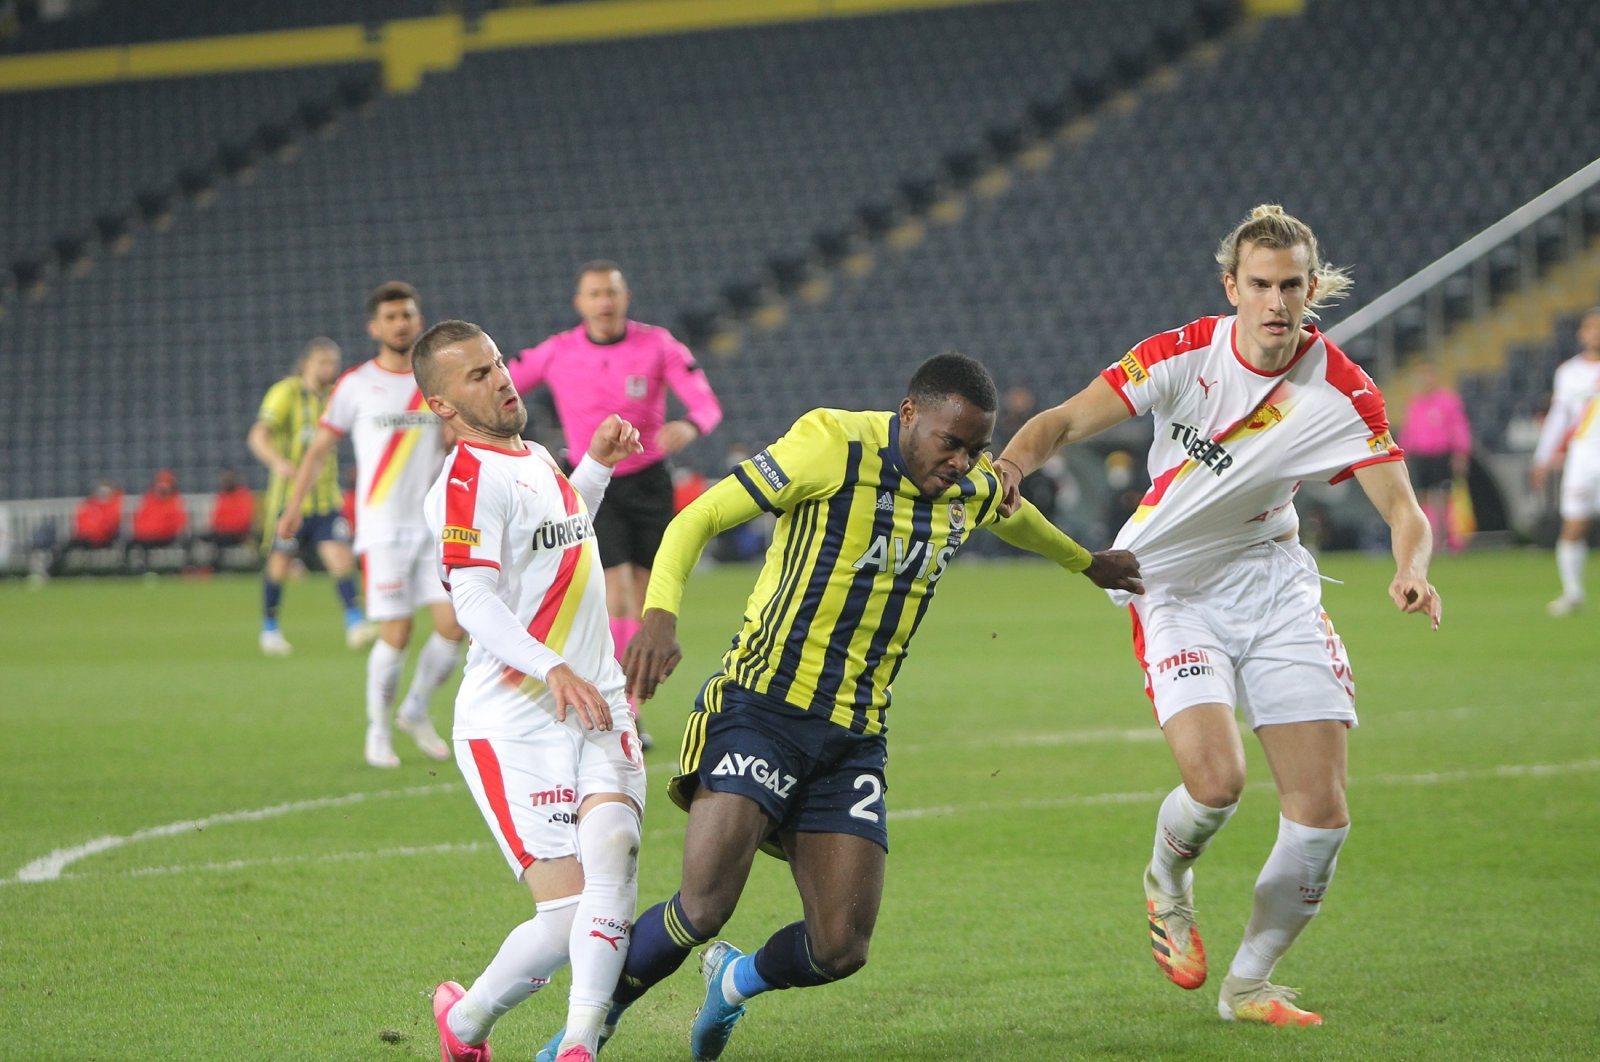 A player from Fenerbahçe (C) battles with two from Göztepe during their Süper Lig match, a 1-0  Göztepe win at Ülker Stadium in Istanbul, Turkey, Feb. 21, 2021. (DHA Photo)